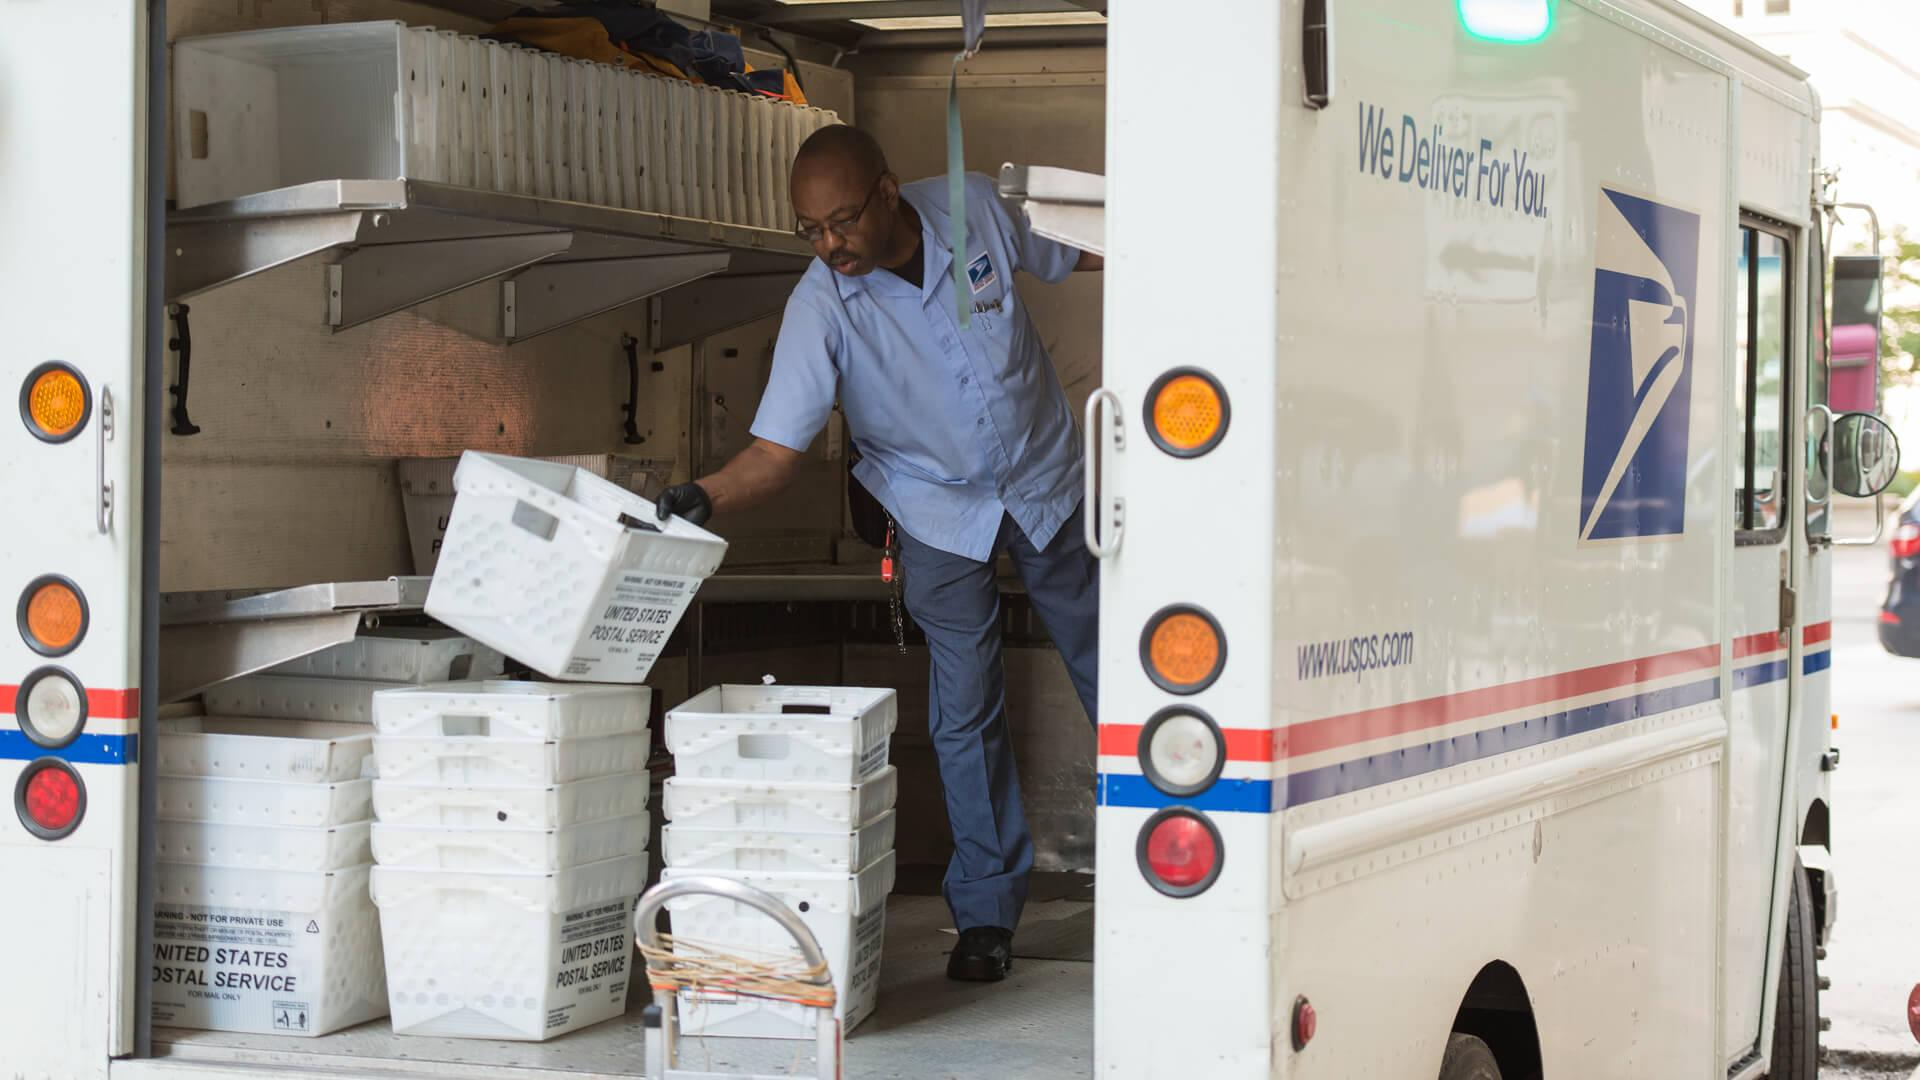 Chicago, USA - September 10, 2015: A USPS deliveryman sorting in the back of his truck on LaSalle street in the Loop late in the day.